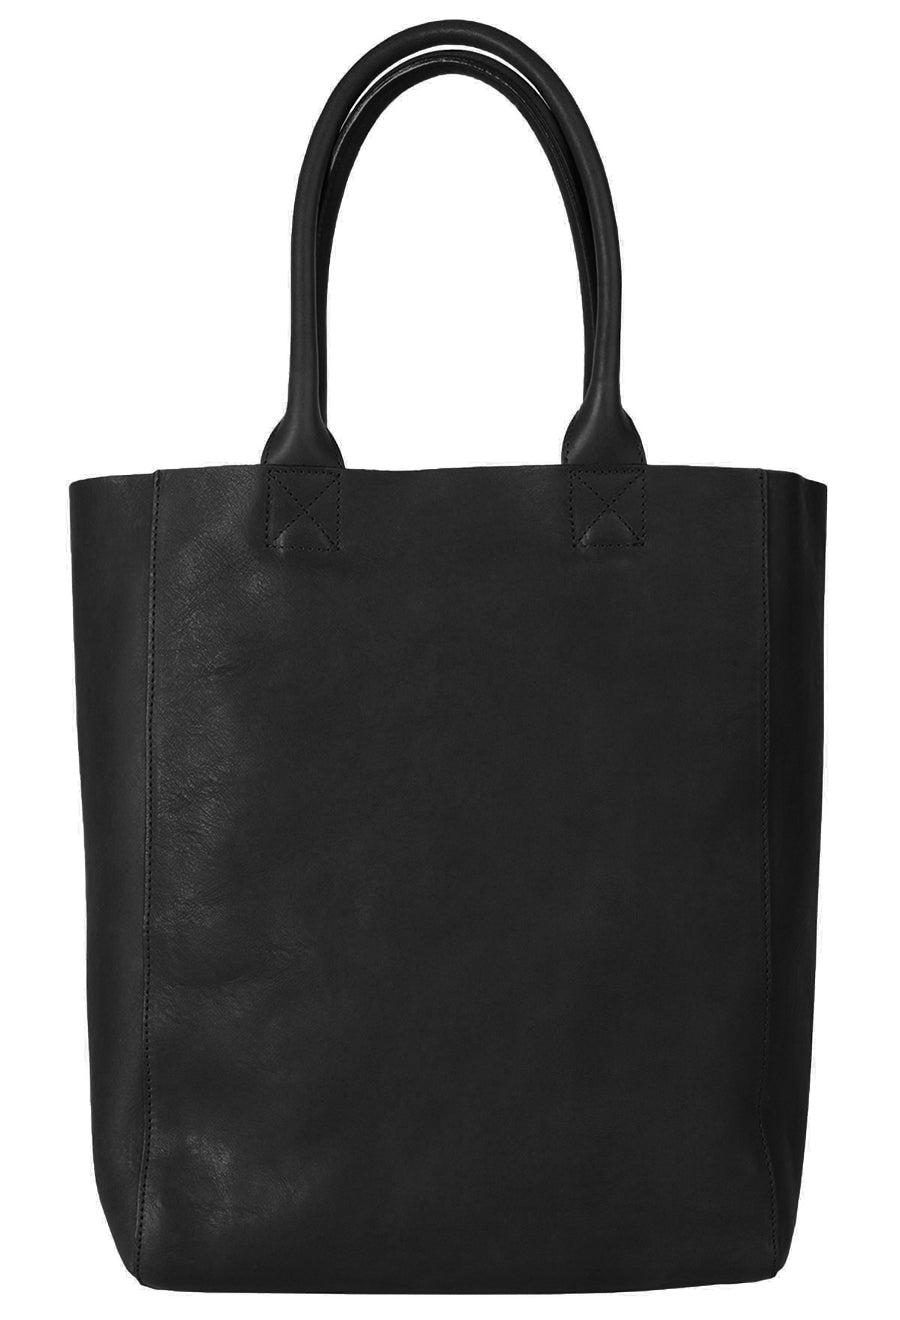 Pre-order Unlined Tote Black